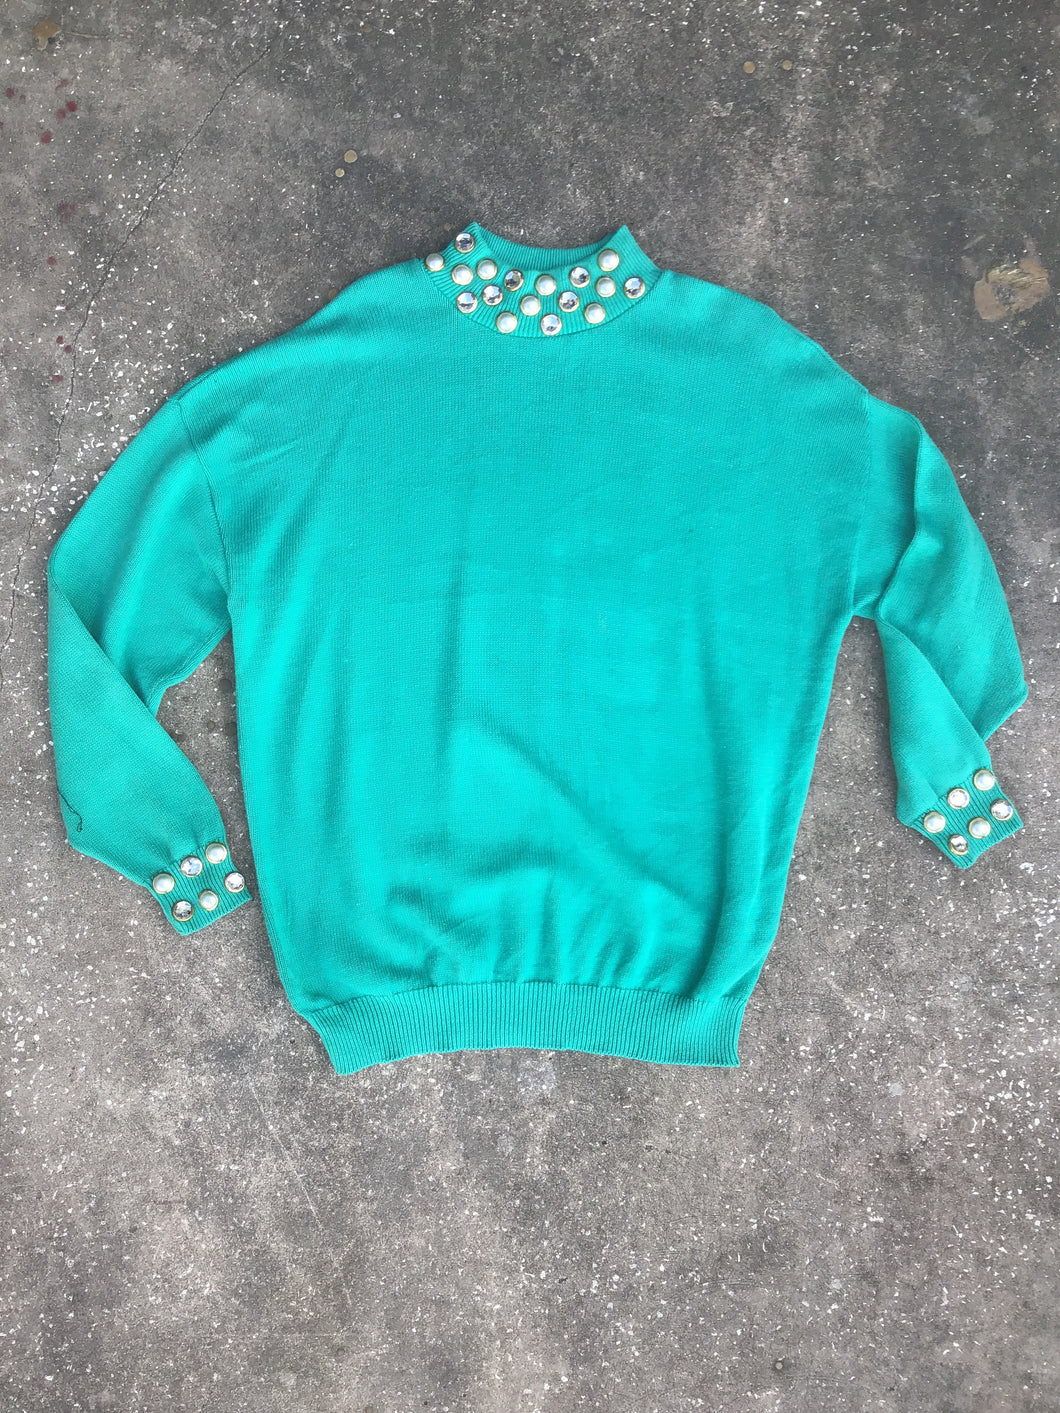 Talk of the Walk Teal Pearl Sweater - Closet Freekz